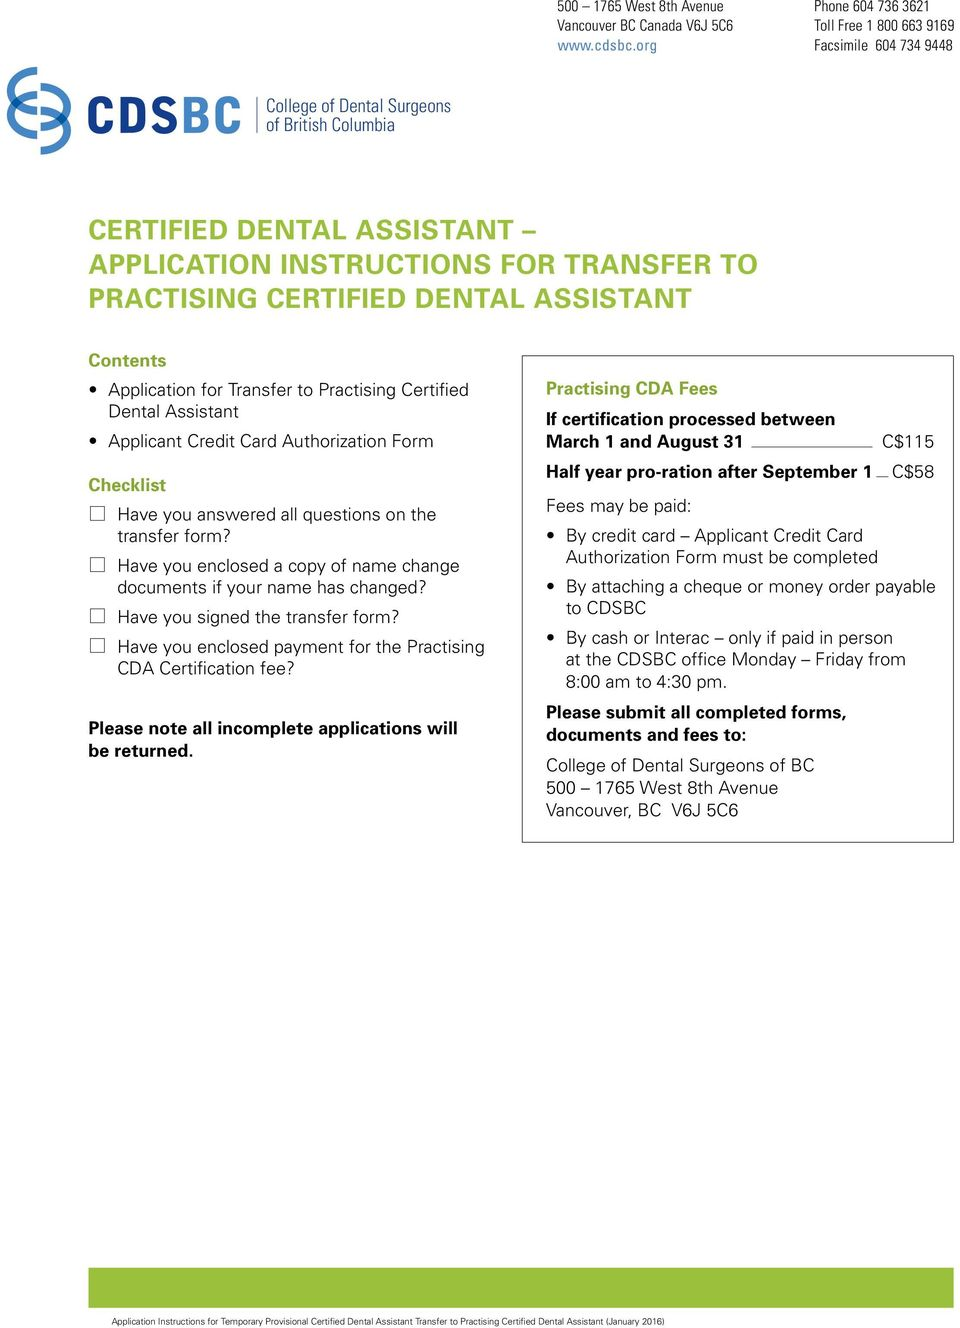 ASSISTANT Contents Application for Transfer to Practising Certified Dental Assistant Applicant Credit Card Authorization Form Checklist Have you answered all questions on the transfer form?